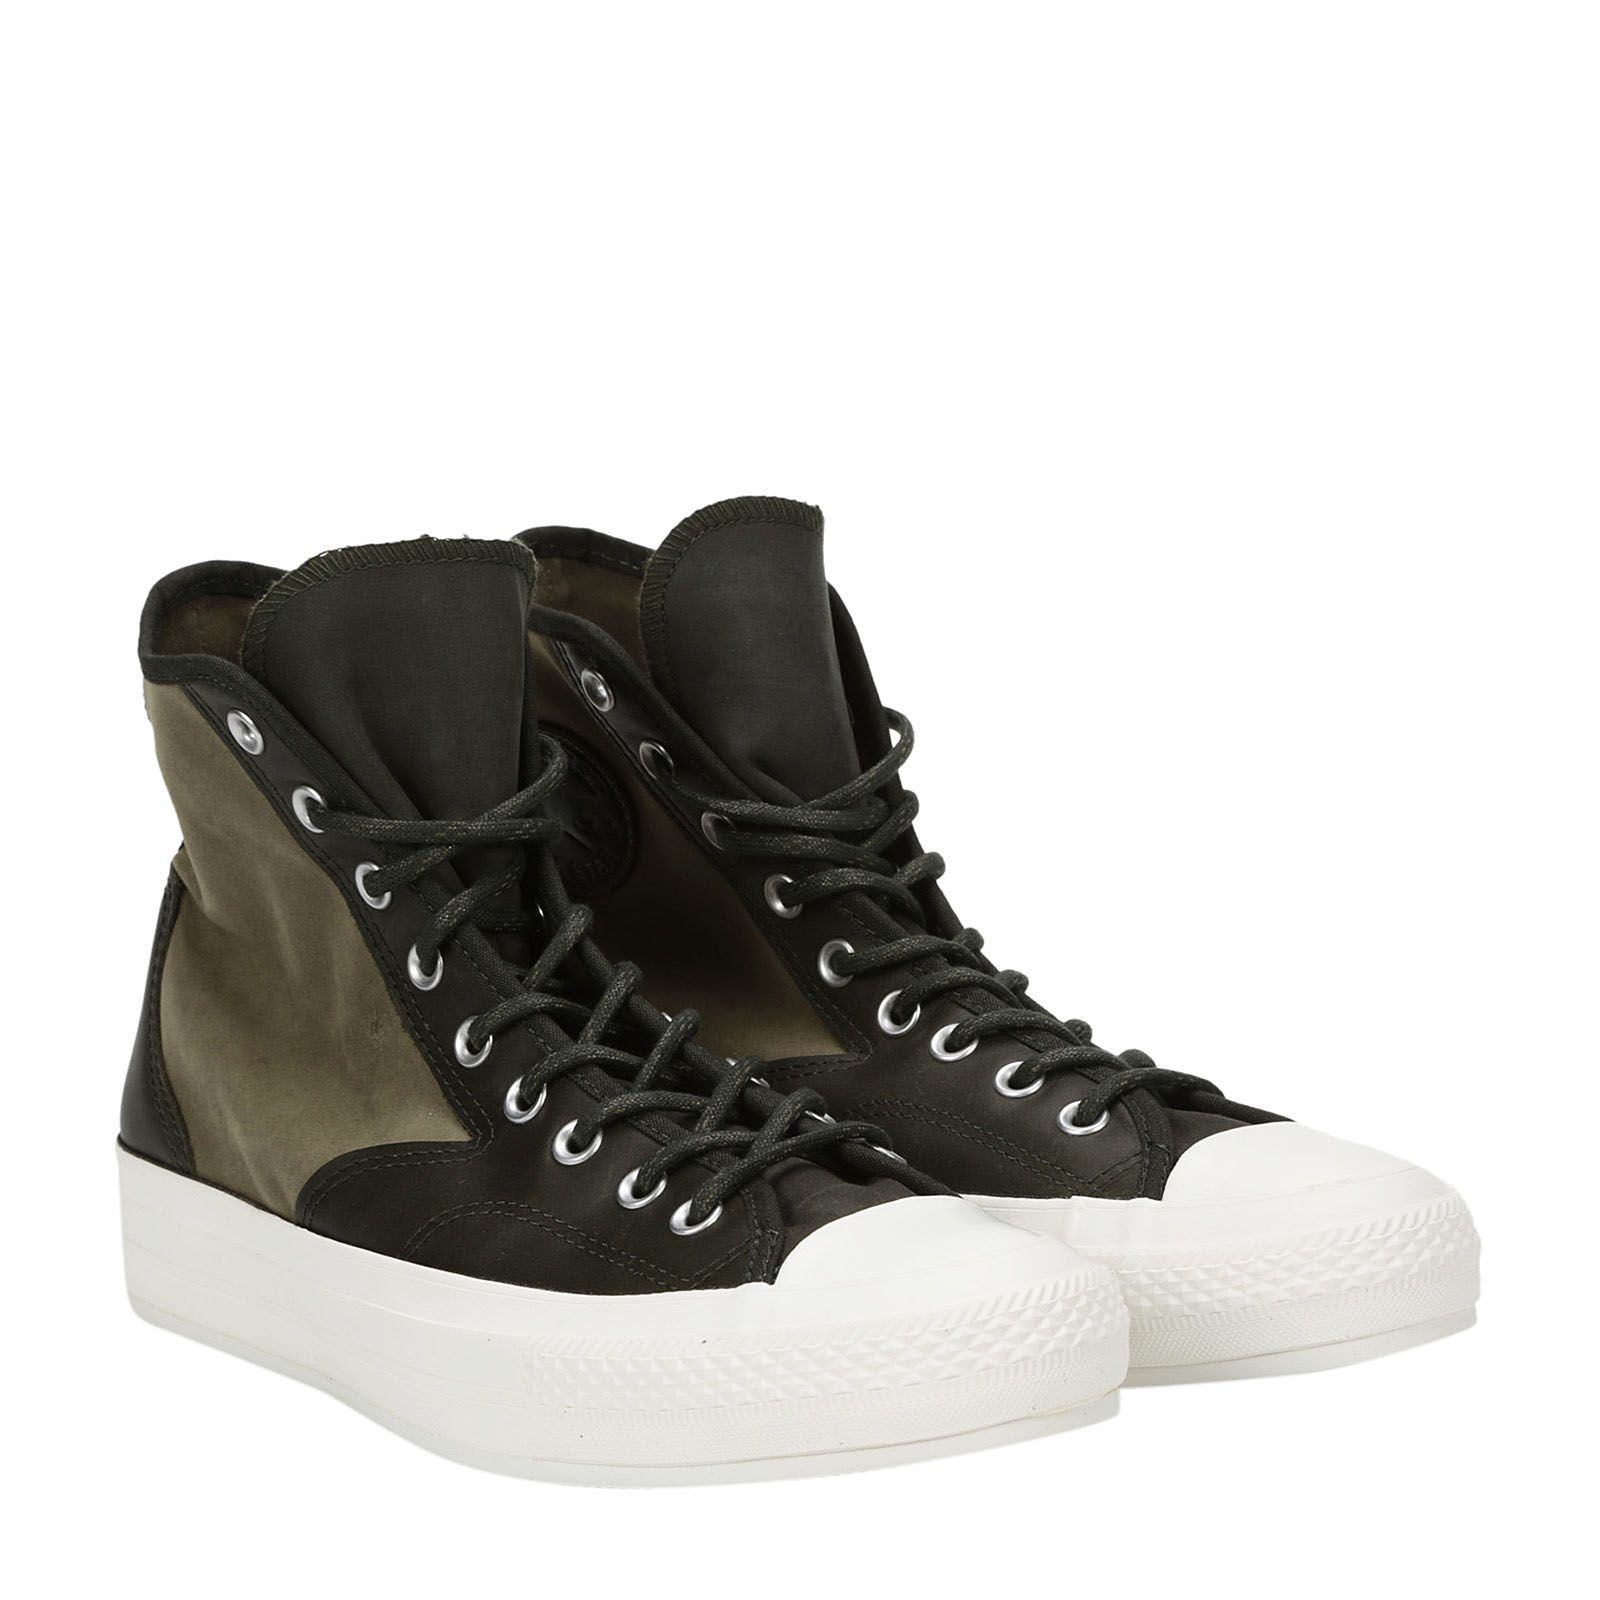 98cc8967da06 CONVERSE CHUCK TAYLOR 1970S HIKER HI TOP SNEAKERS.  converse  shoes ...